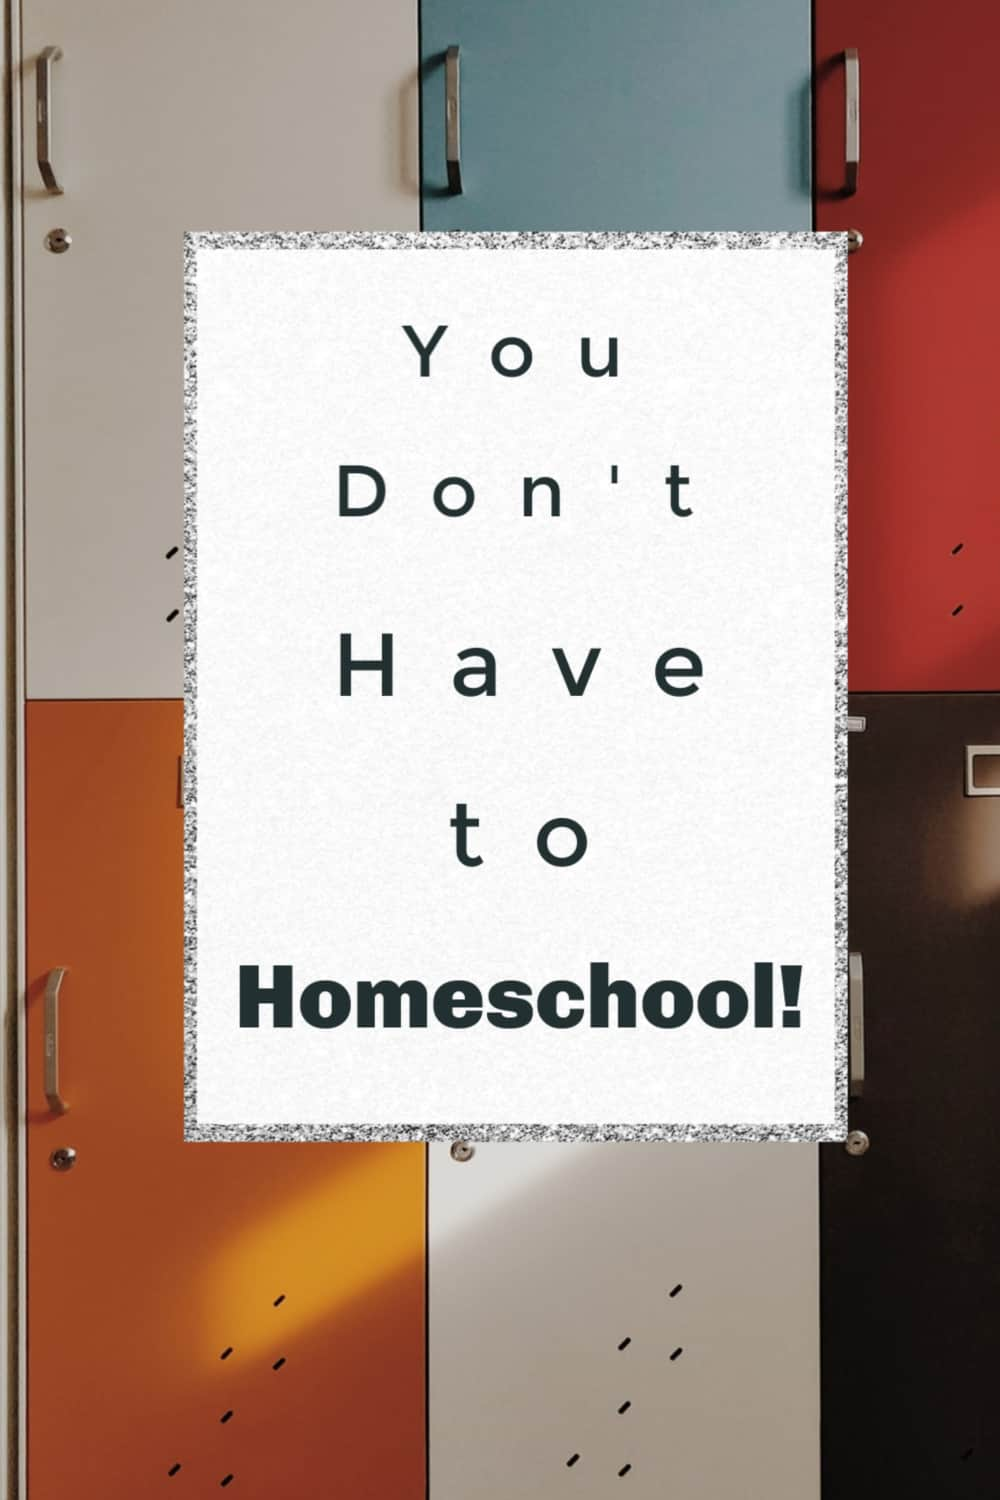 You don't have to homeschool! You may feel pressured to homeschool by circumstances. However, there are other options!